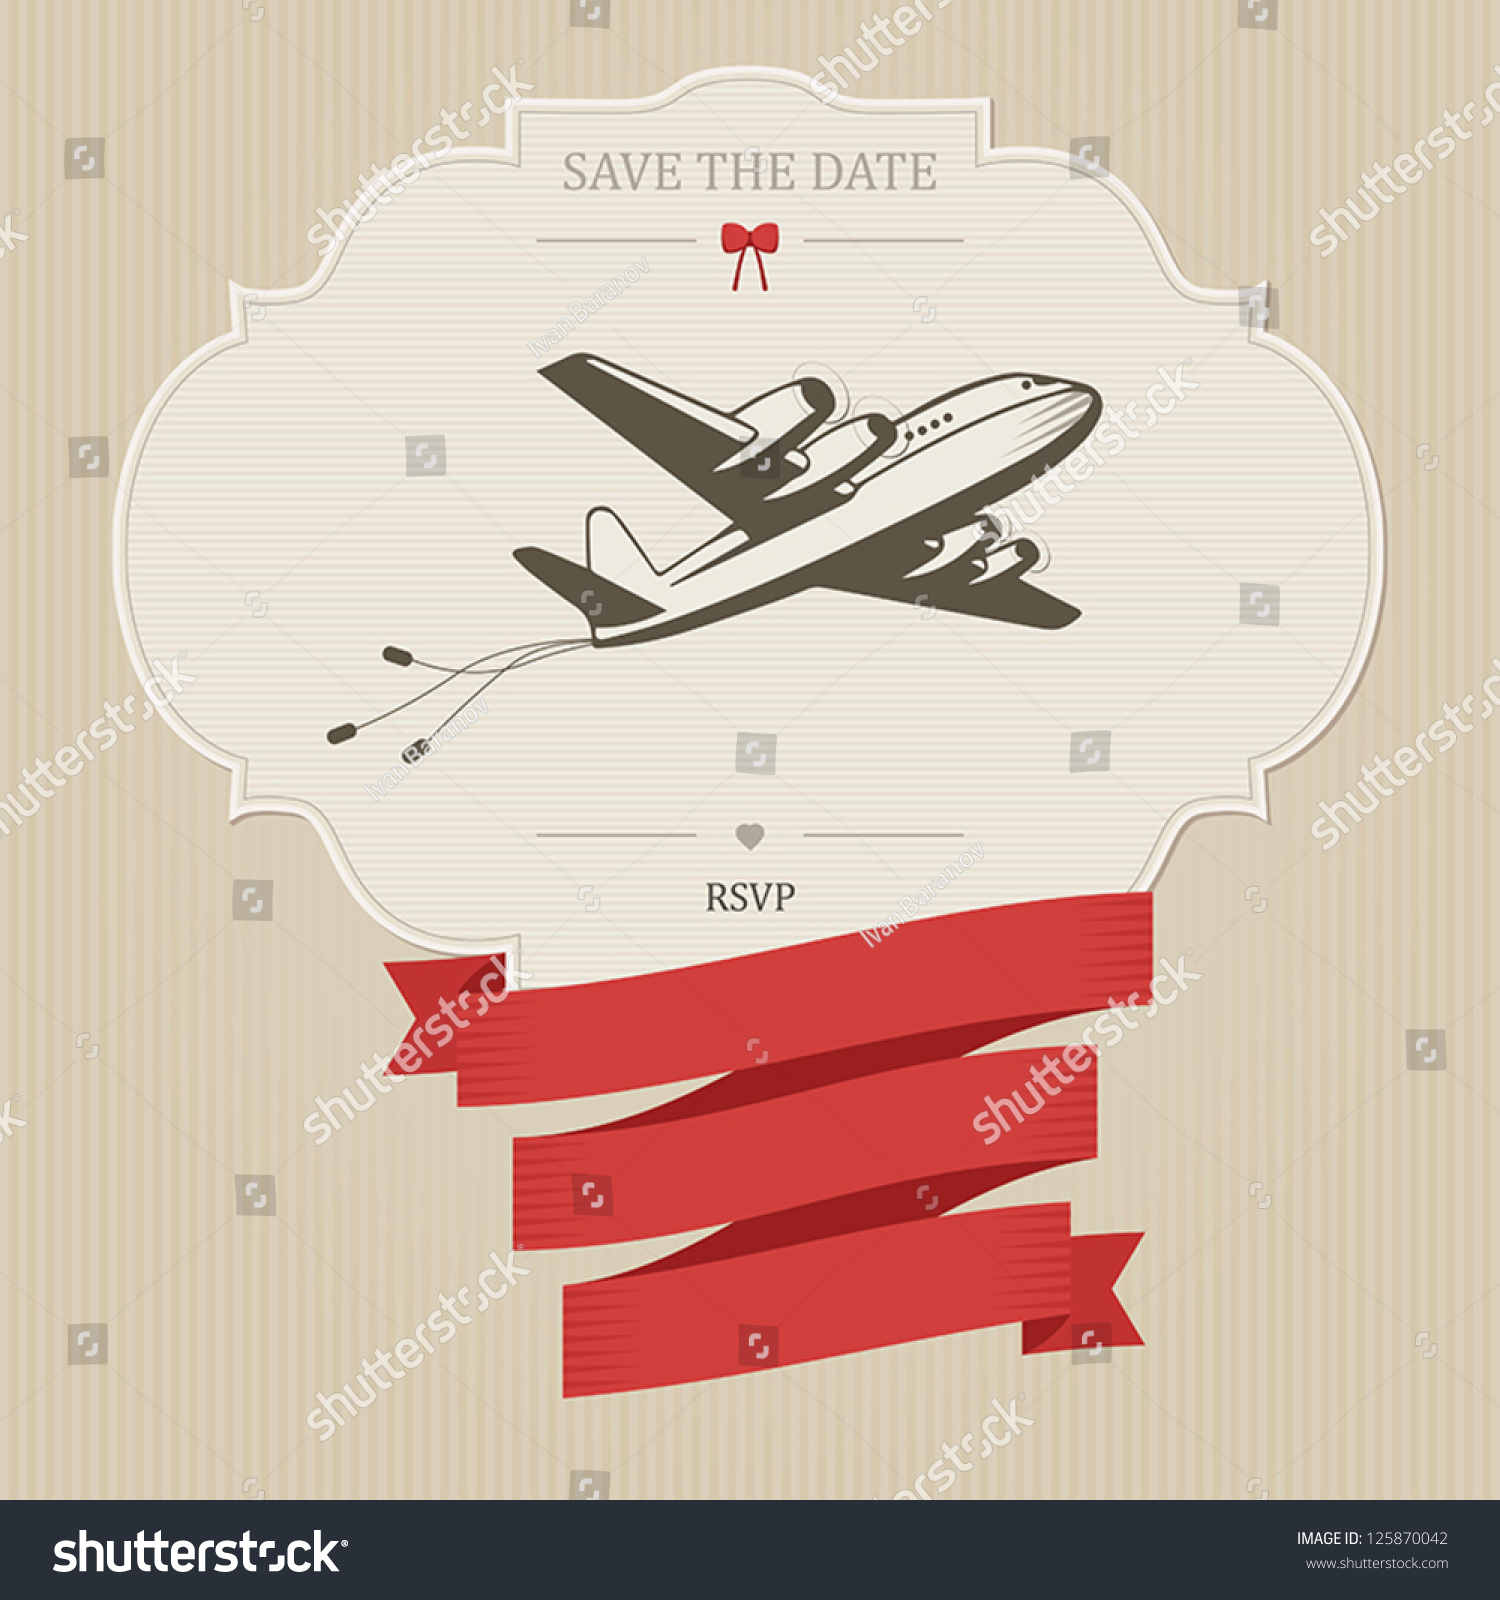 Funny Vintage Wedding Invitation Retro Aircraft Stock Vector ...